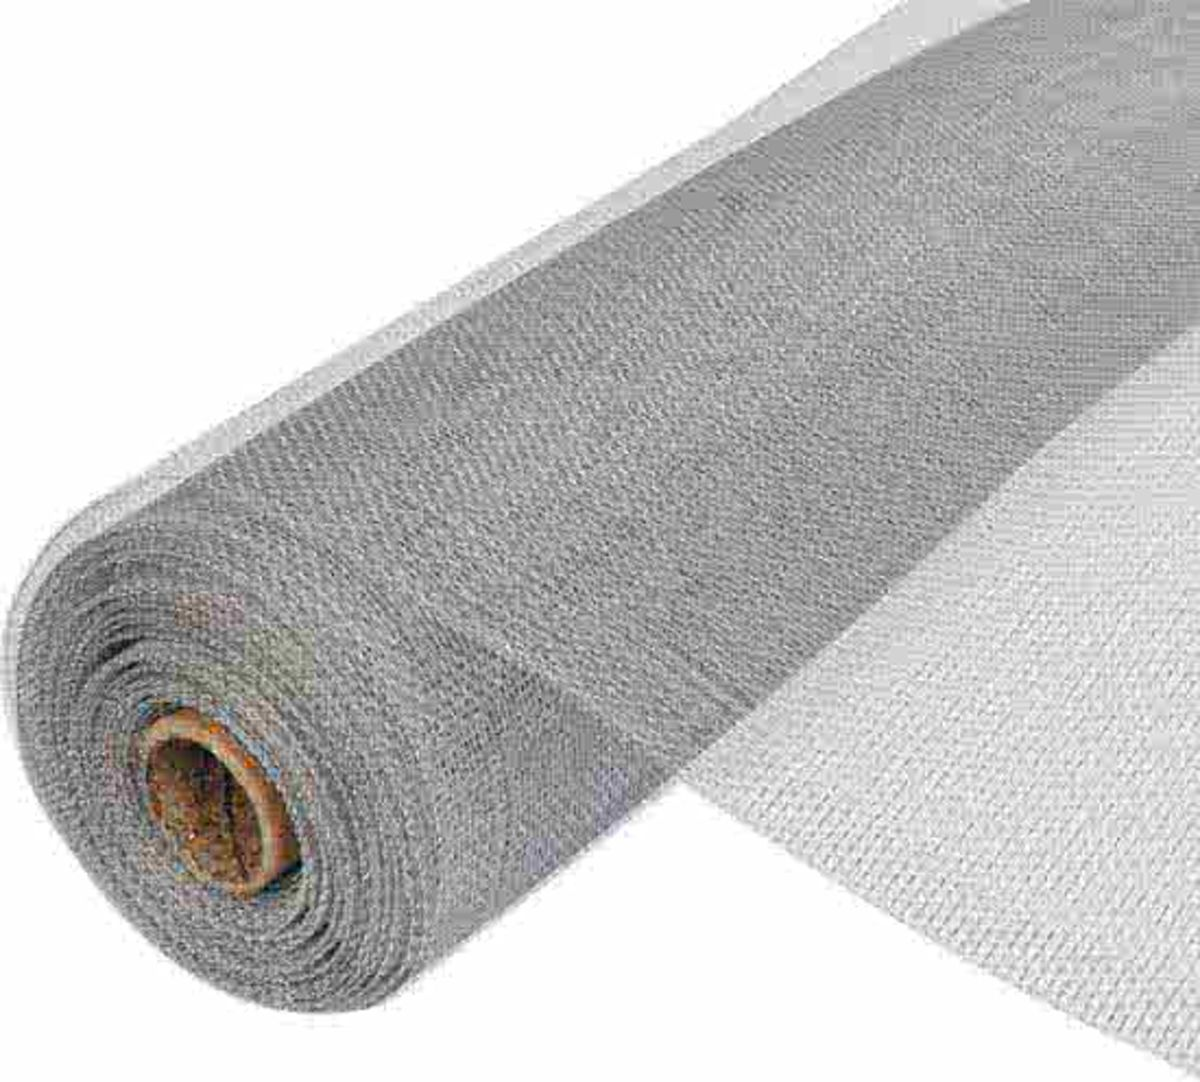 Horrengaas Deur Bol Horrengaas Nylon 100 Cm Breed X 250 Cm Lang